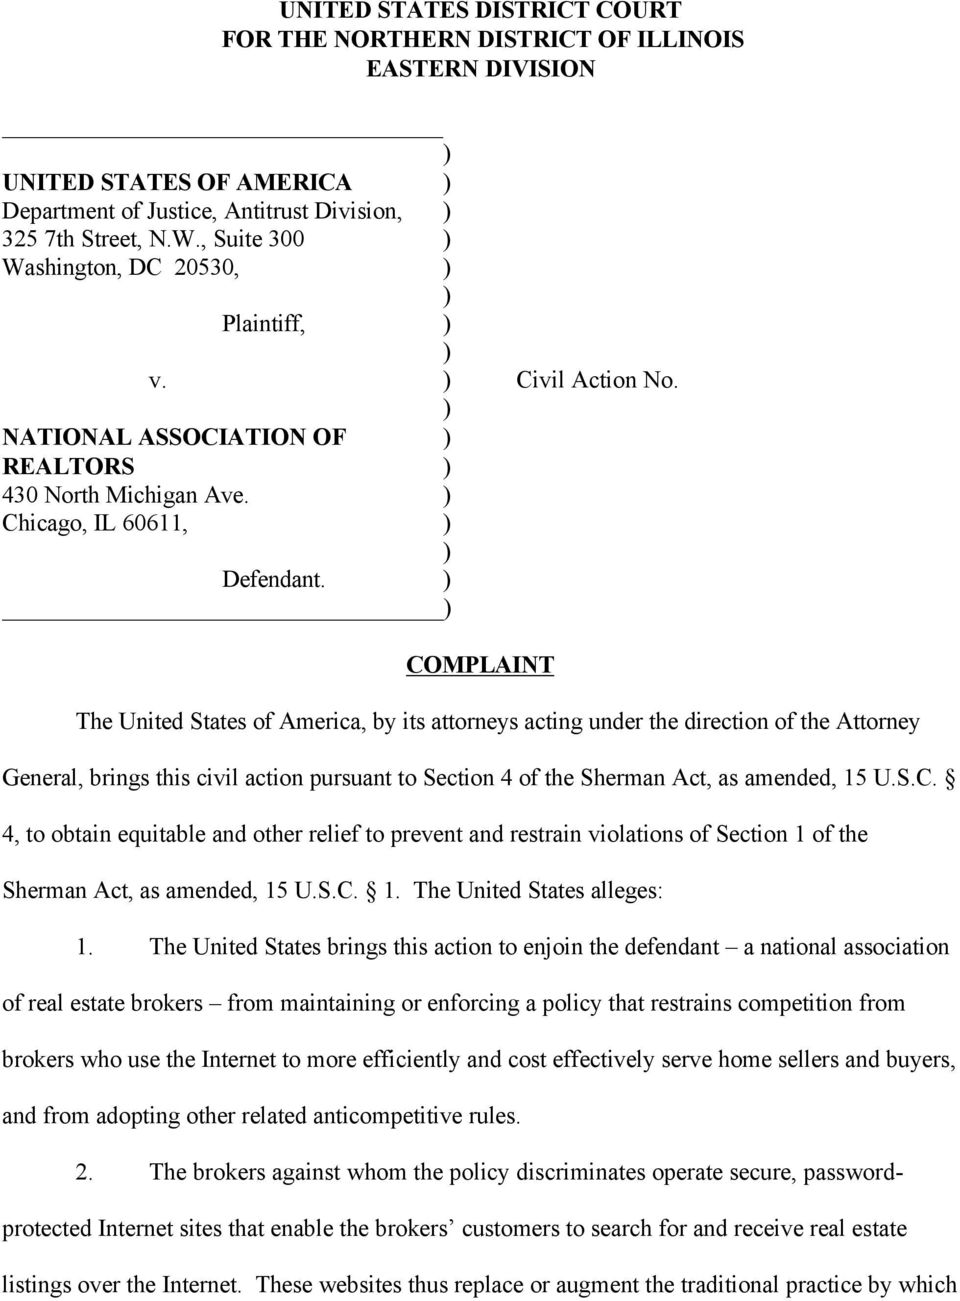 ) ) COMPLAINT The United States of America, by its attorneys acting under the direction of the Attorney General, brings this civil action pursuant to Section 4 of the Sherman Act, as amended, 15 U.S.C. 4, to obtain equitable and other relief to prevent and restrain violations of Section 1 of the Sherman Act, as amended, 15 U.